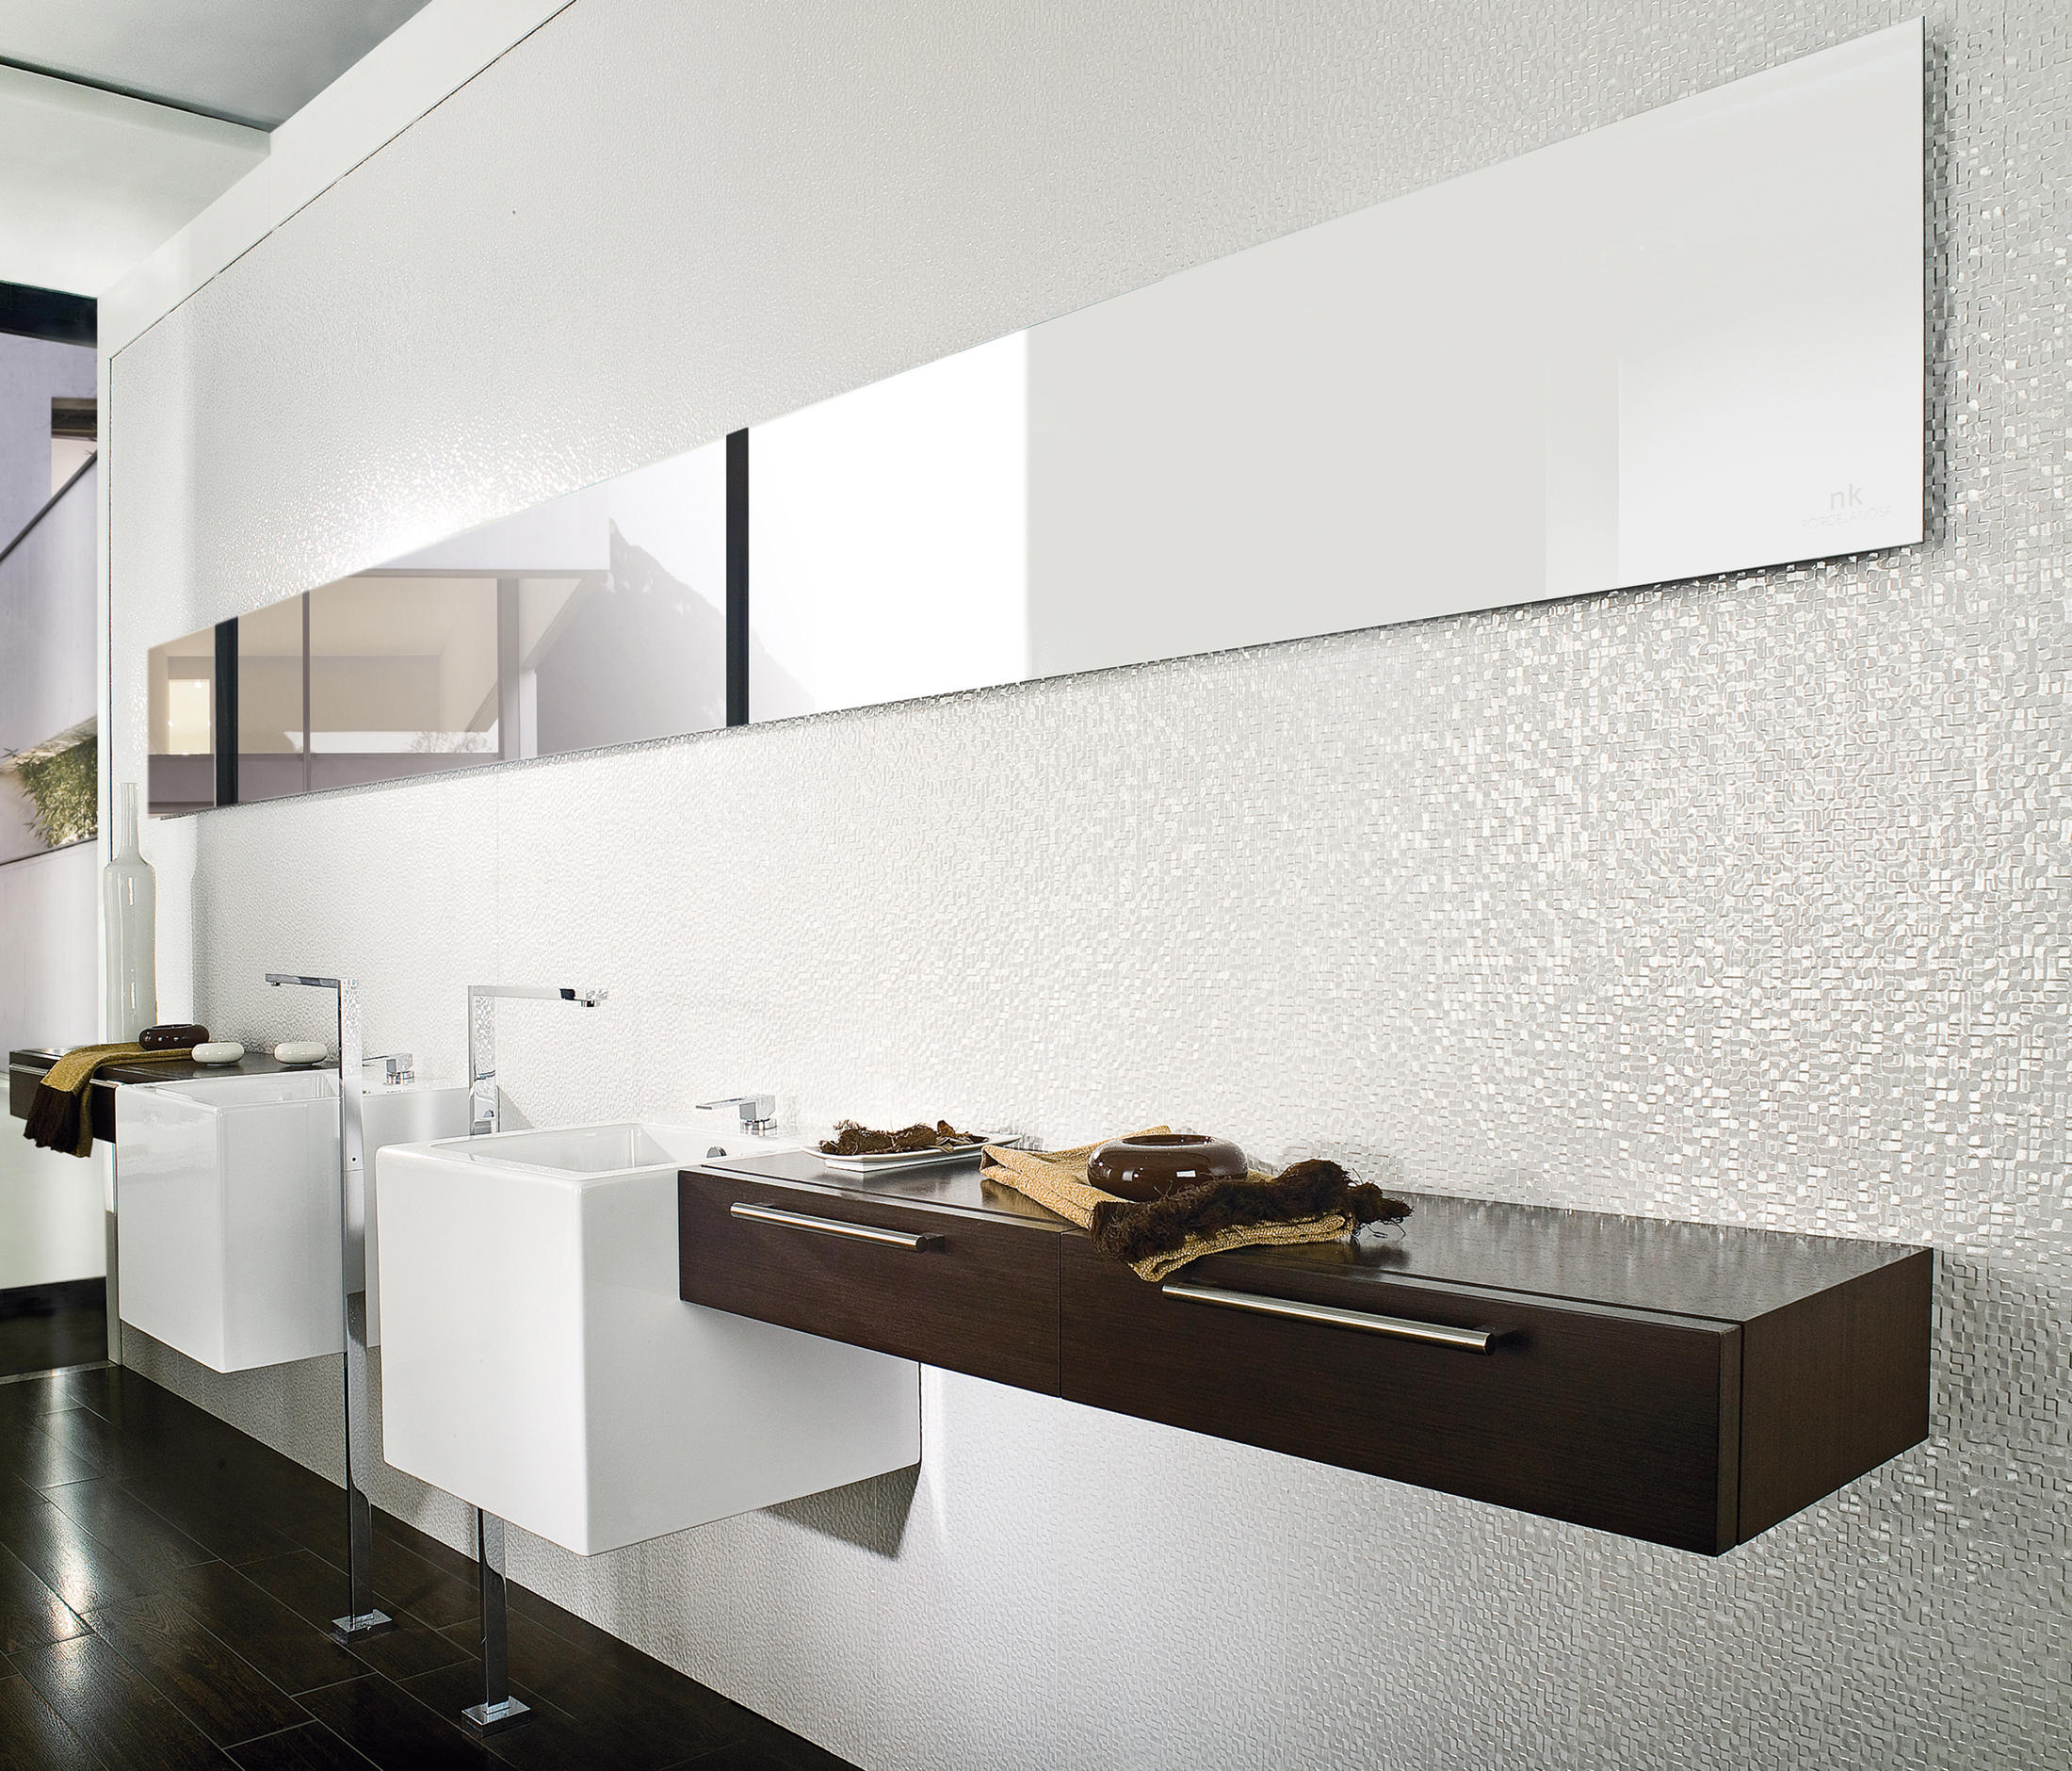 Cubica blanco ceramic tiles from porcelanosa architonic for Carrelage porcelanosa salle de bain